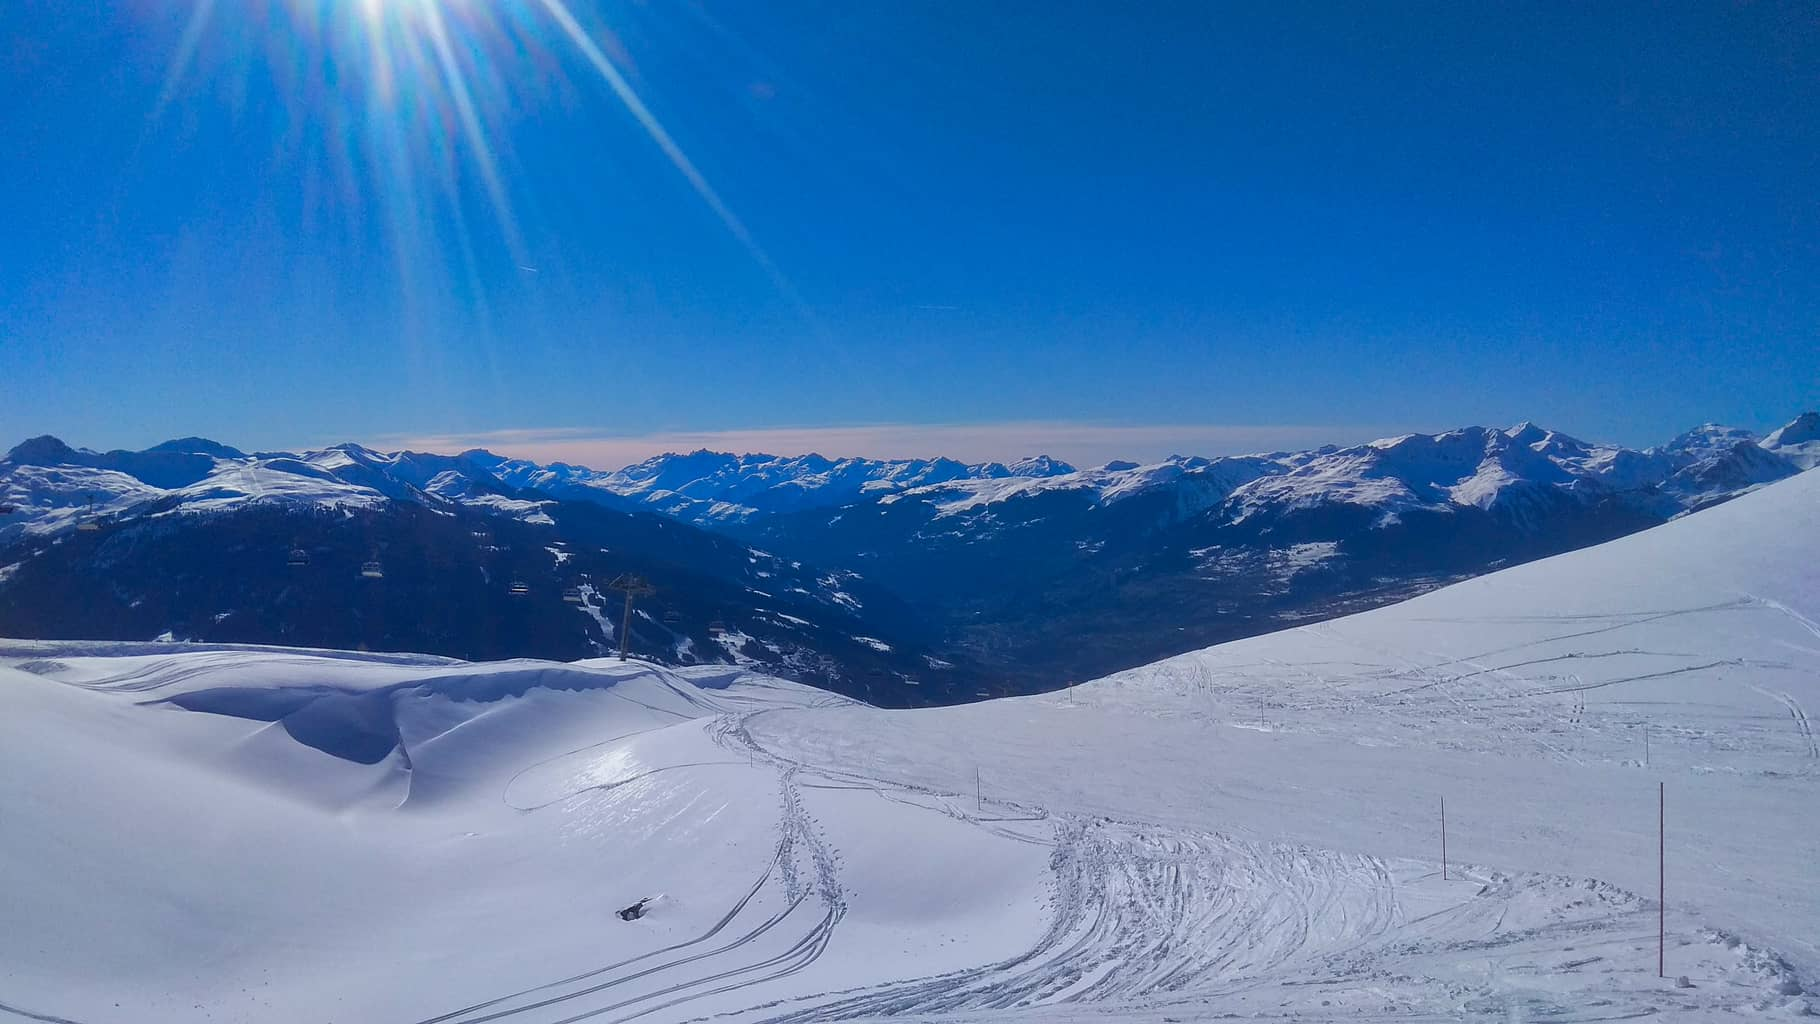 Wide snow covered piste in Les Arcs looking at La Plagne with deep blue sky